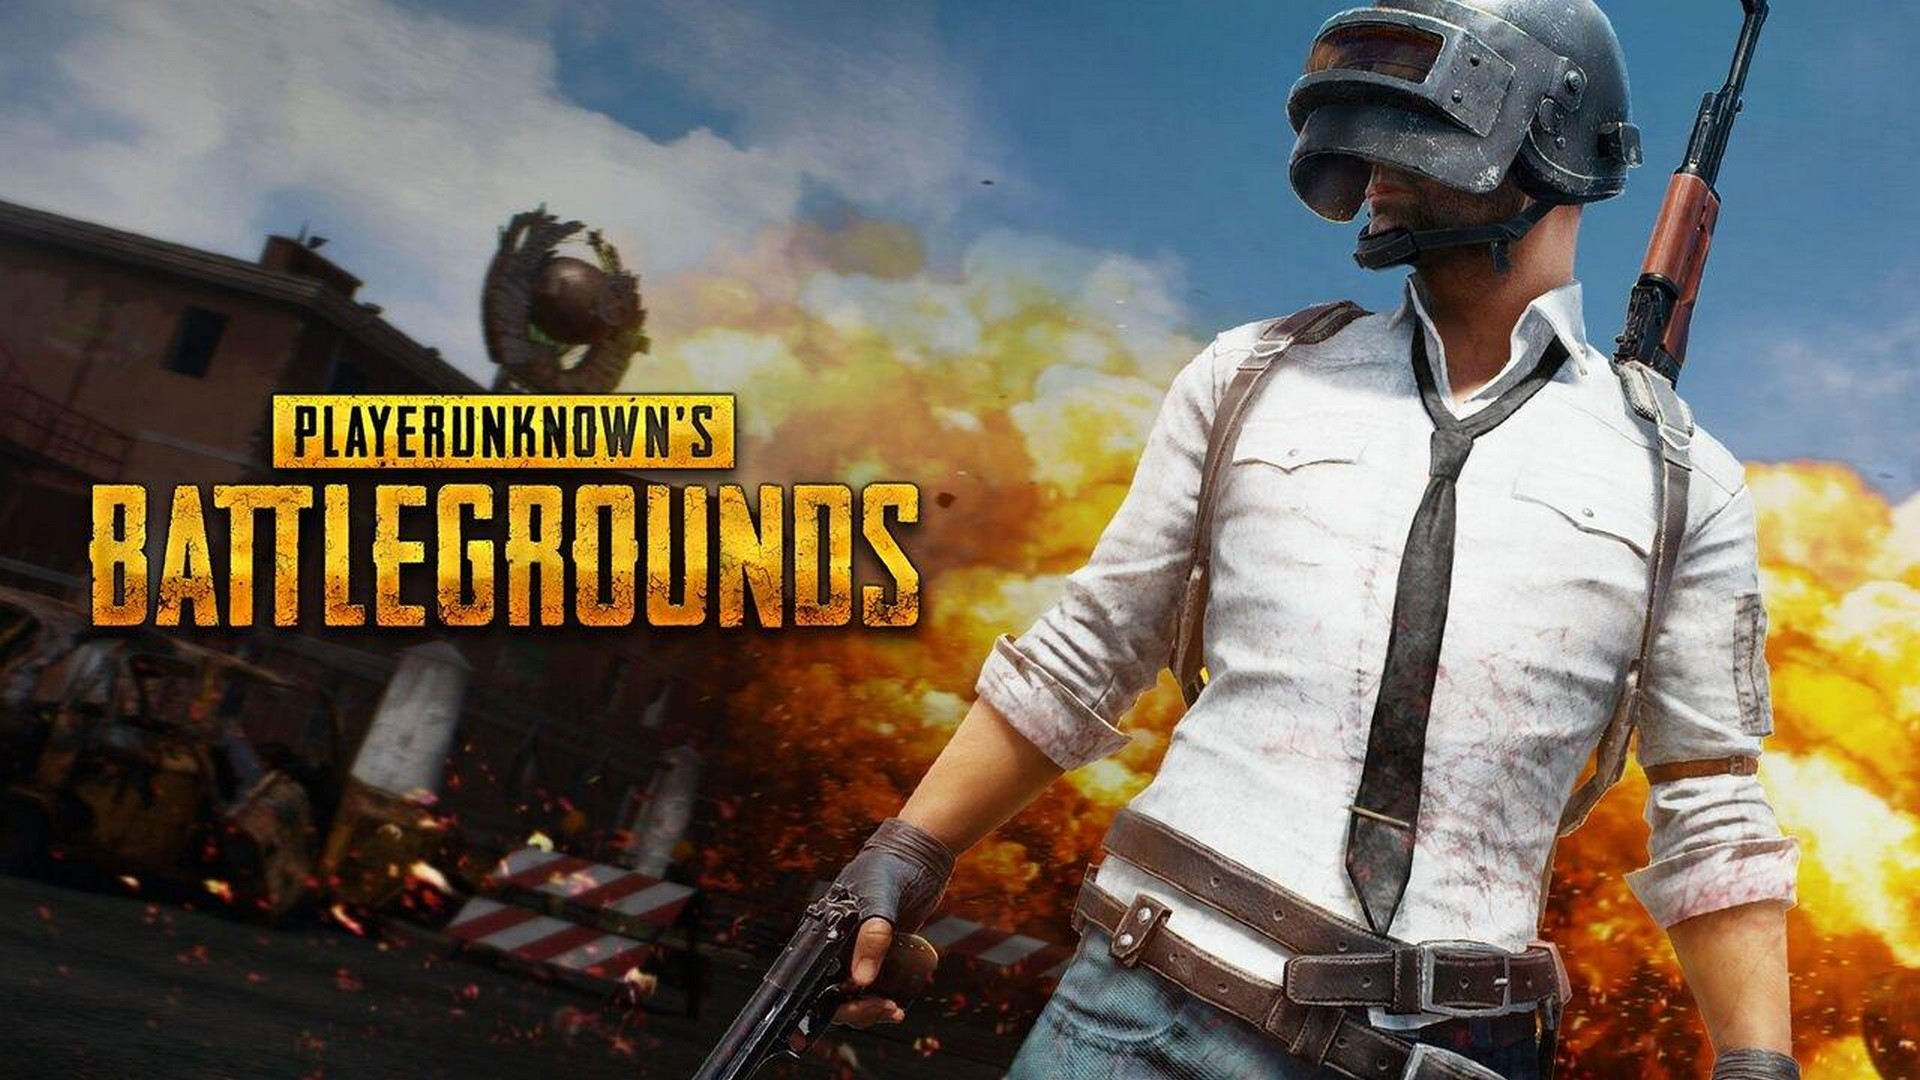 Desktop Wallpaper PUBG New Update with image resolution 1920x1080 pixel. You can use this wallpaper as background for your desktop Computer Screensavers, Android or iPhone smartphones